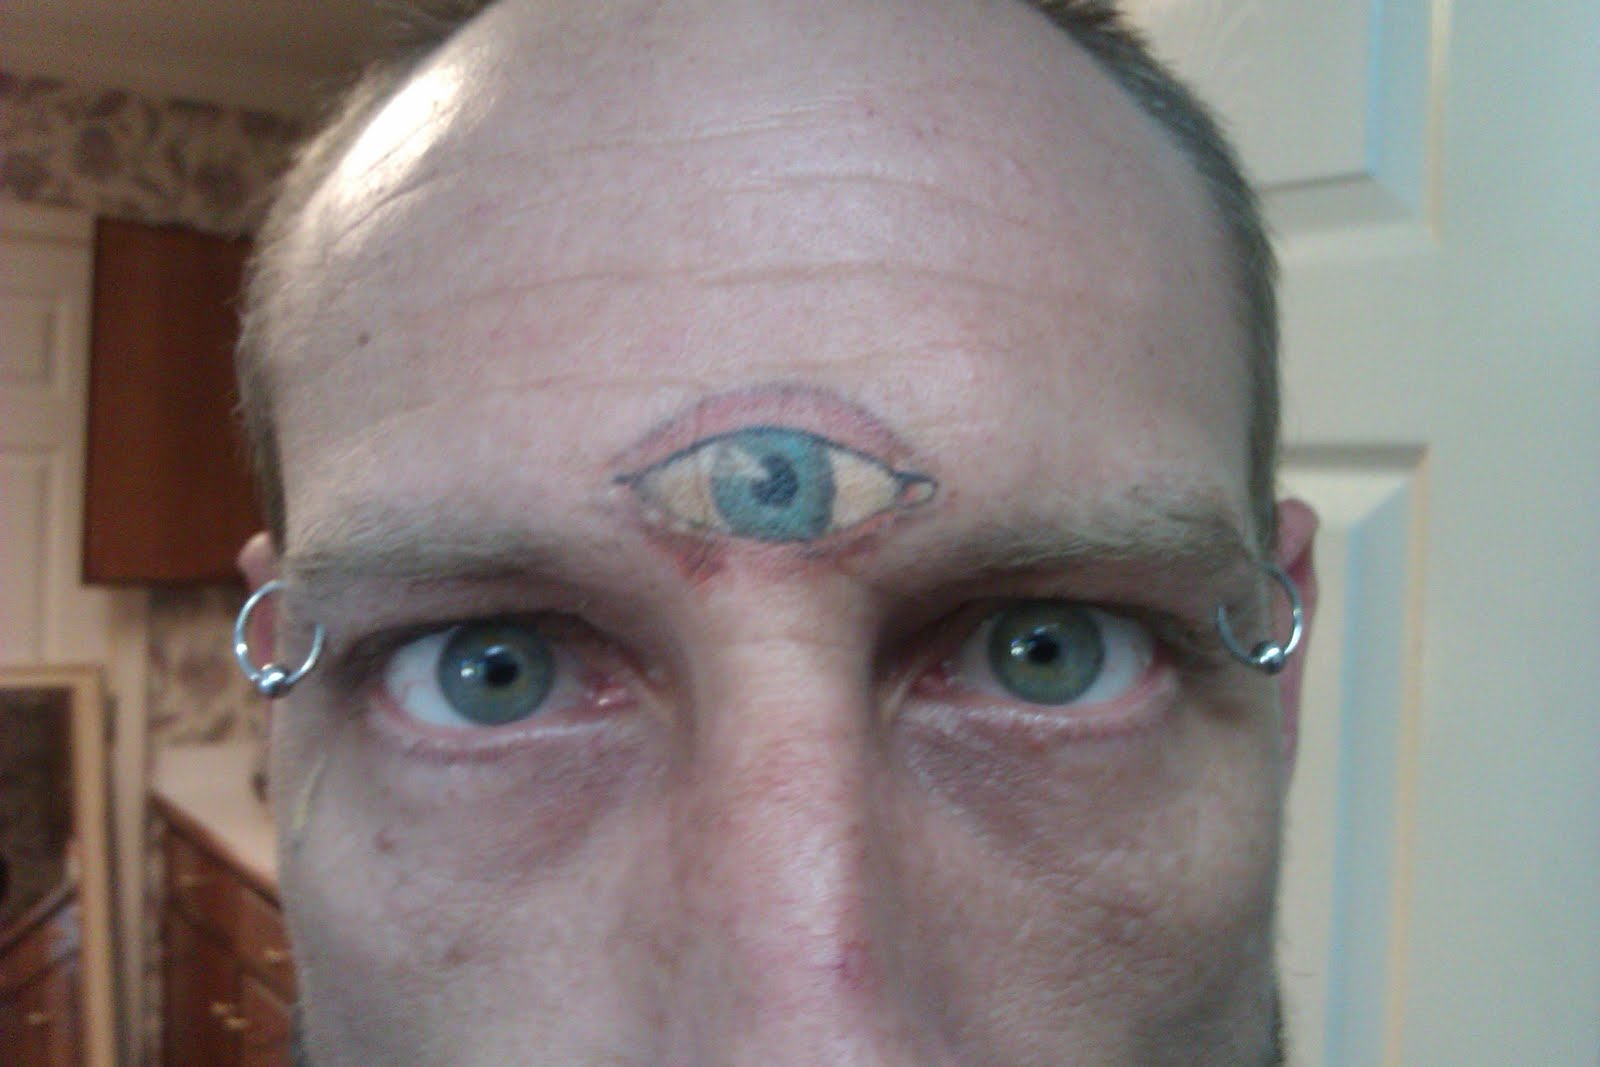 Third Eye Tattoo Forehead | www.pixshark.com - Images ...